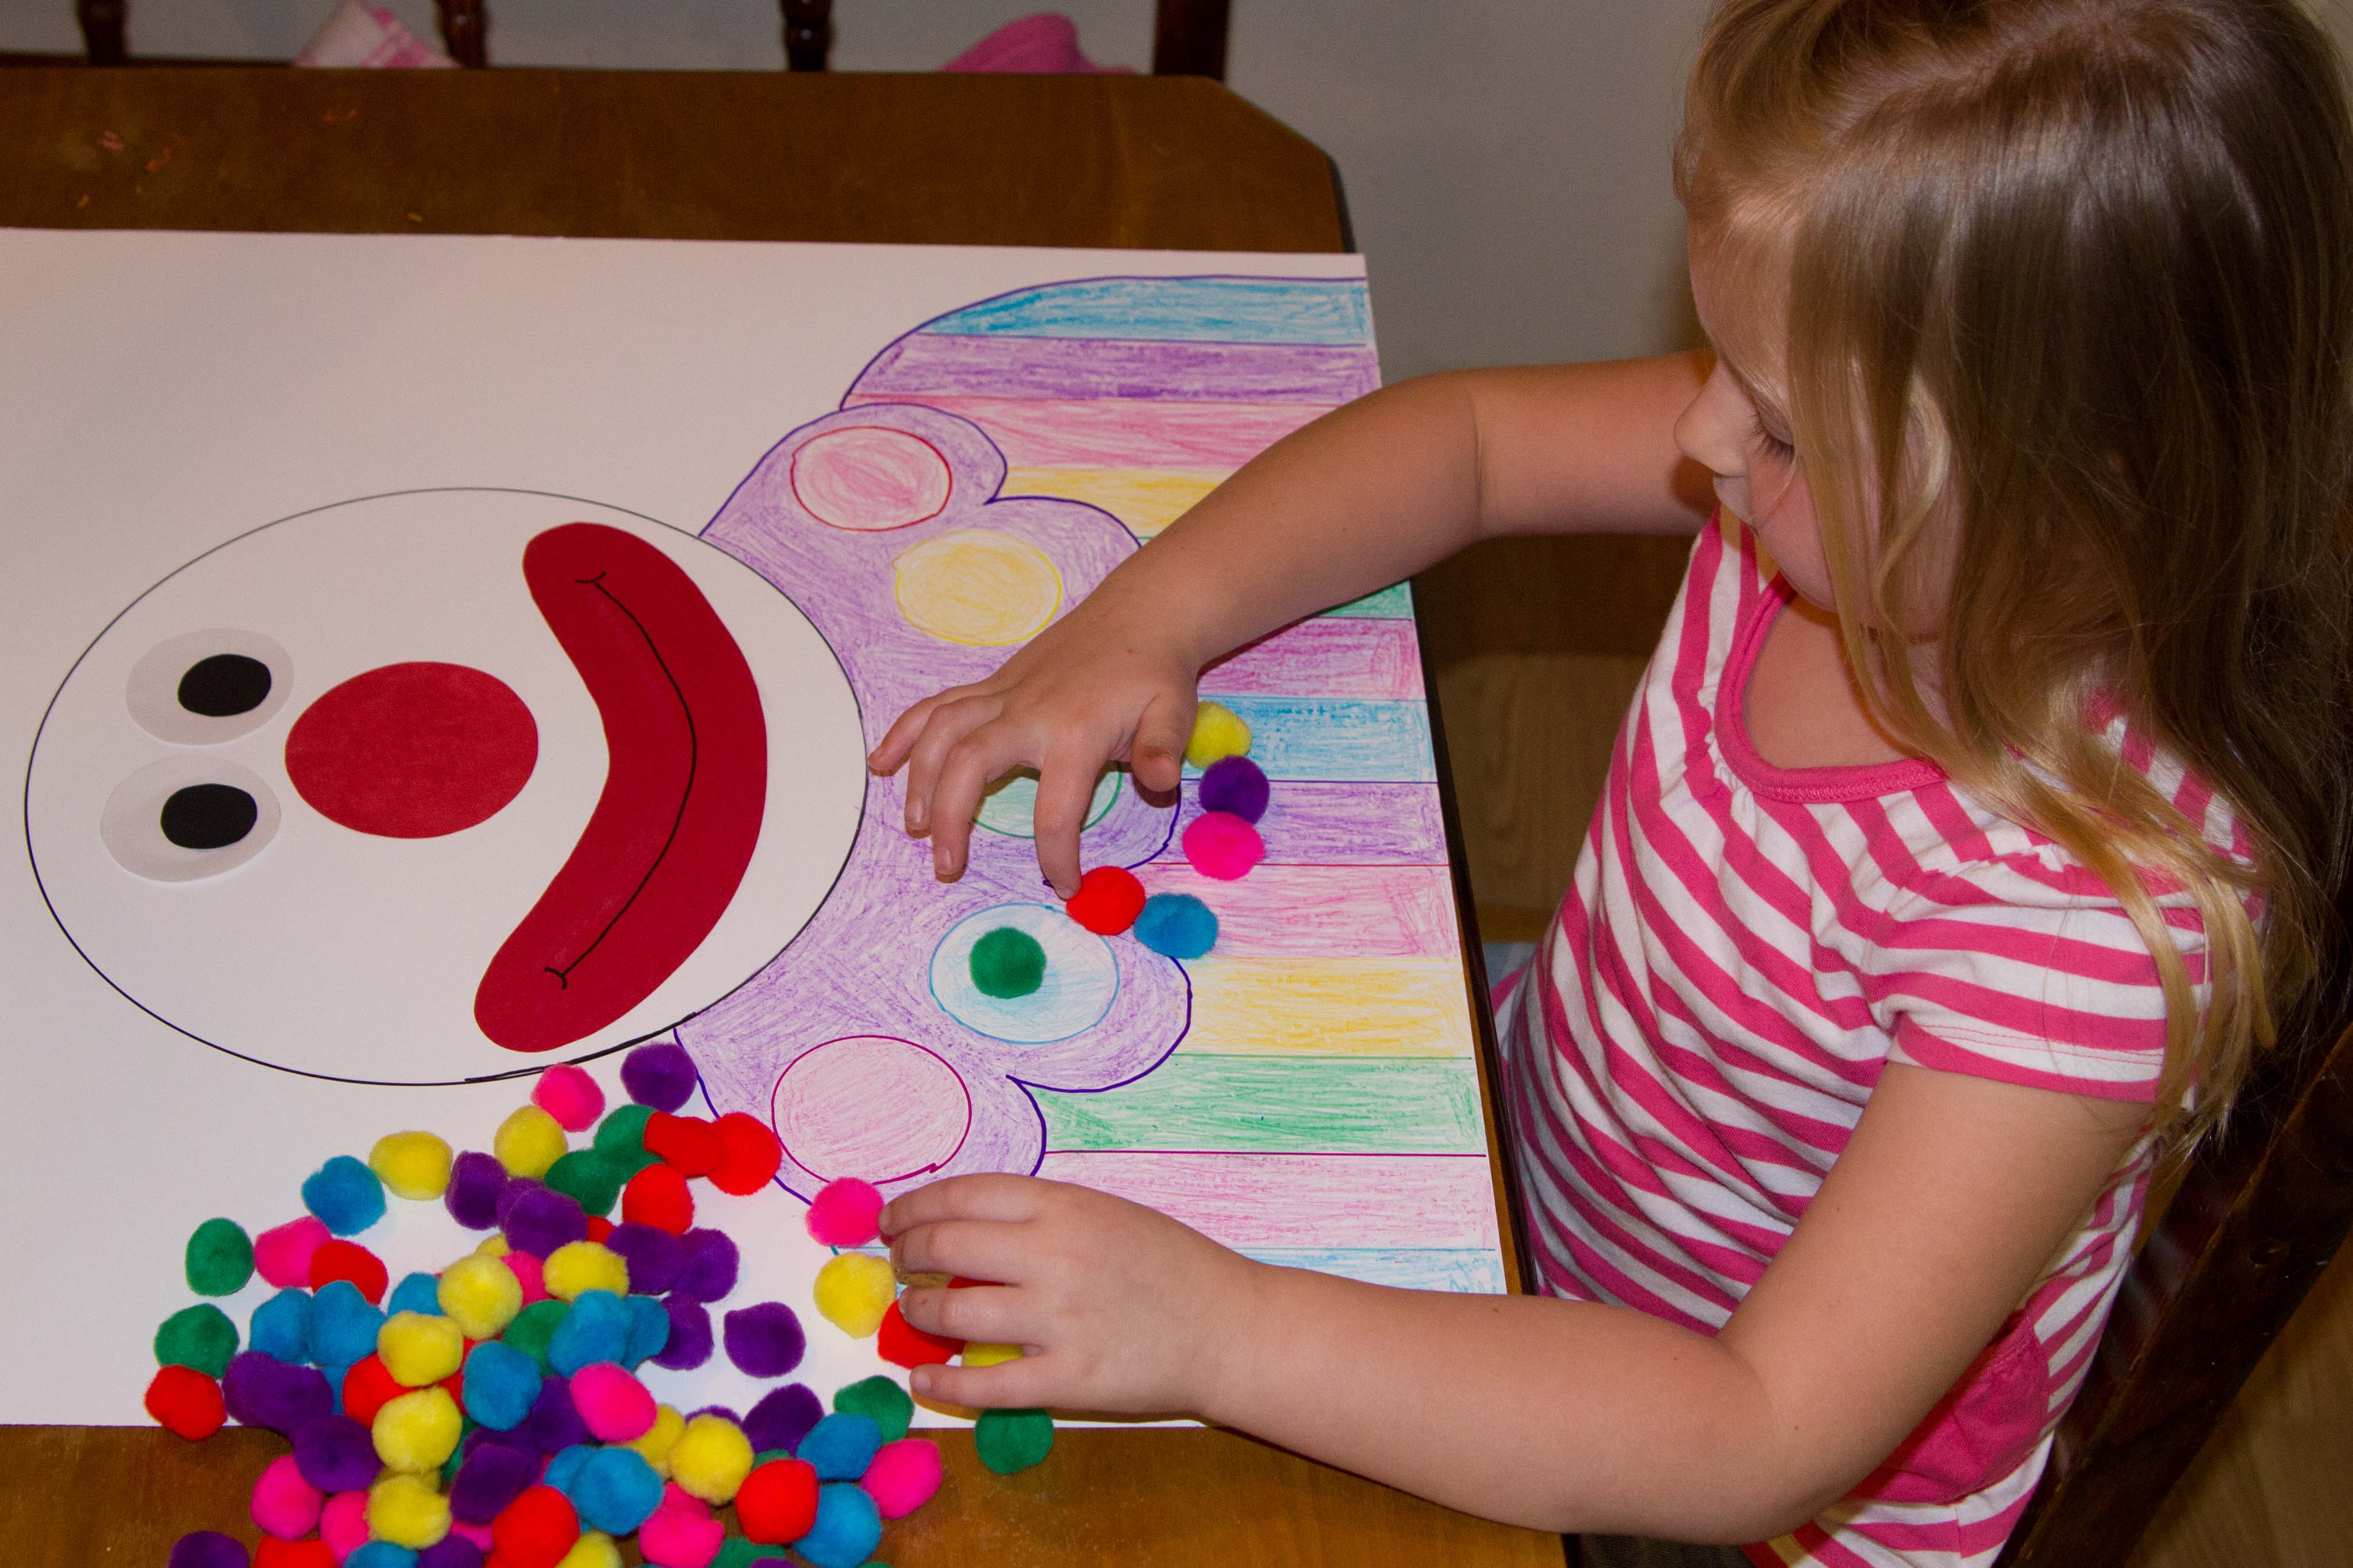 10 Cute School Project Ideas For Kids 100th day of school project hand me down ideas 11